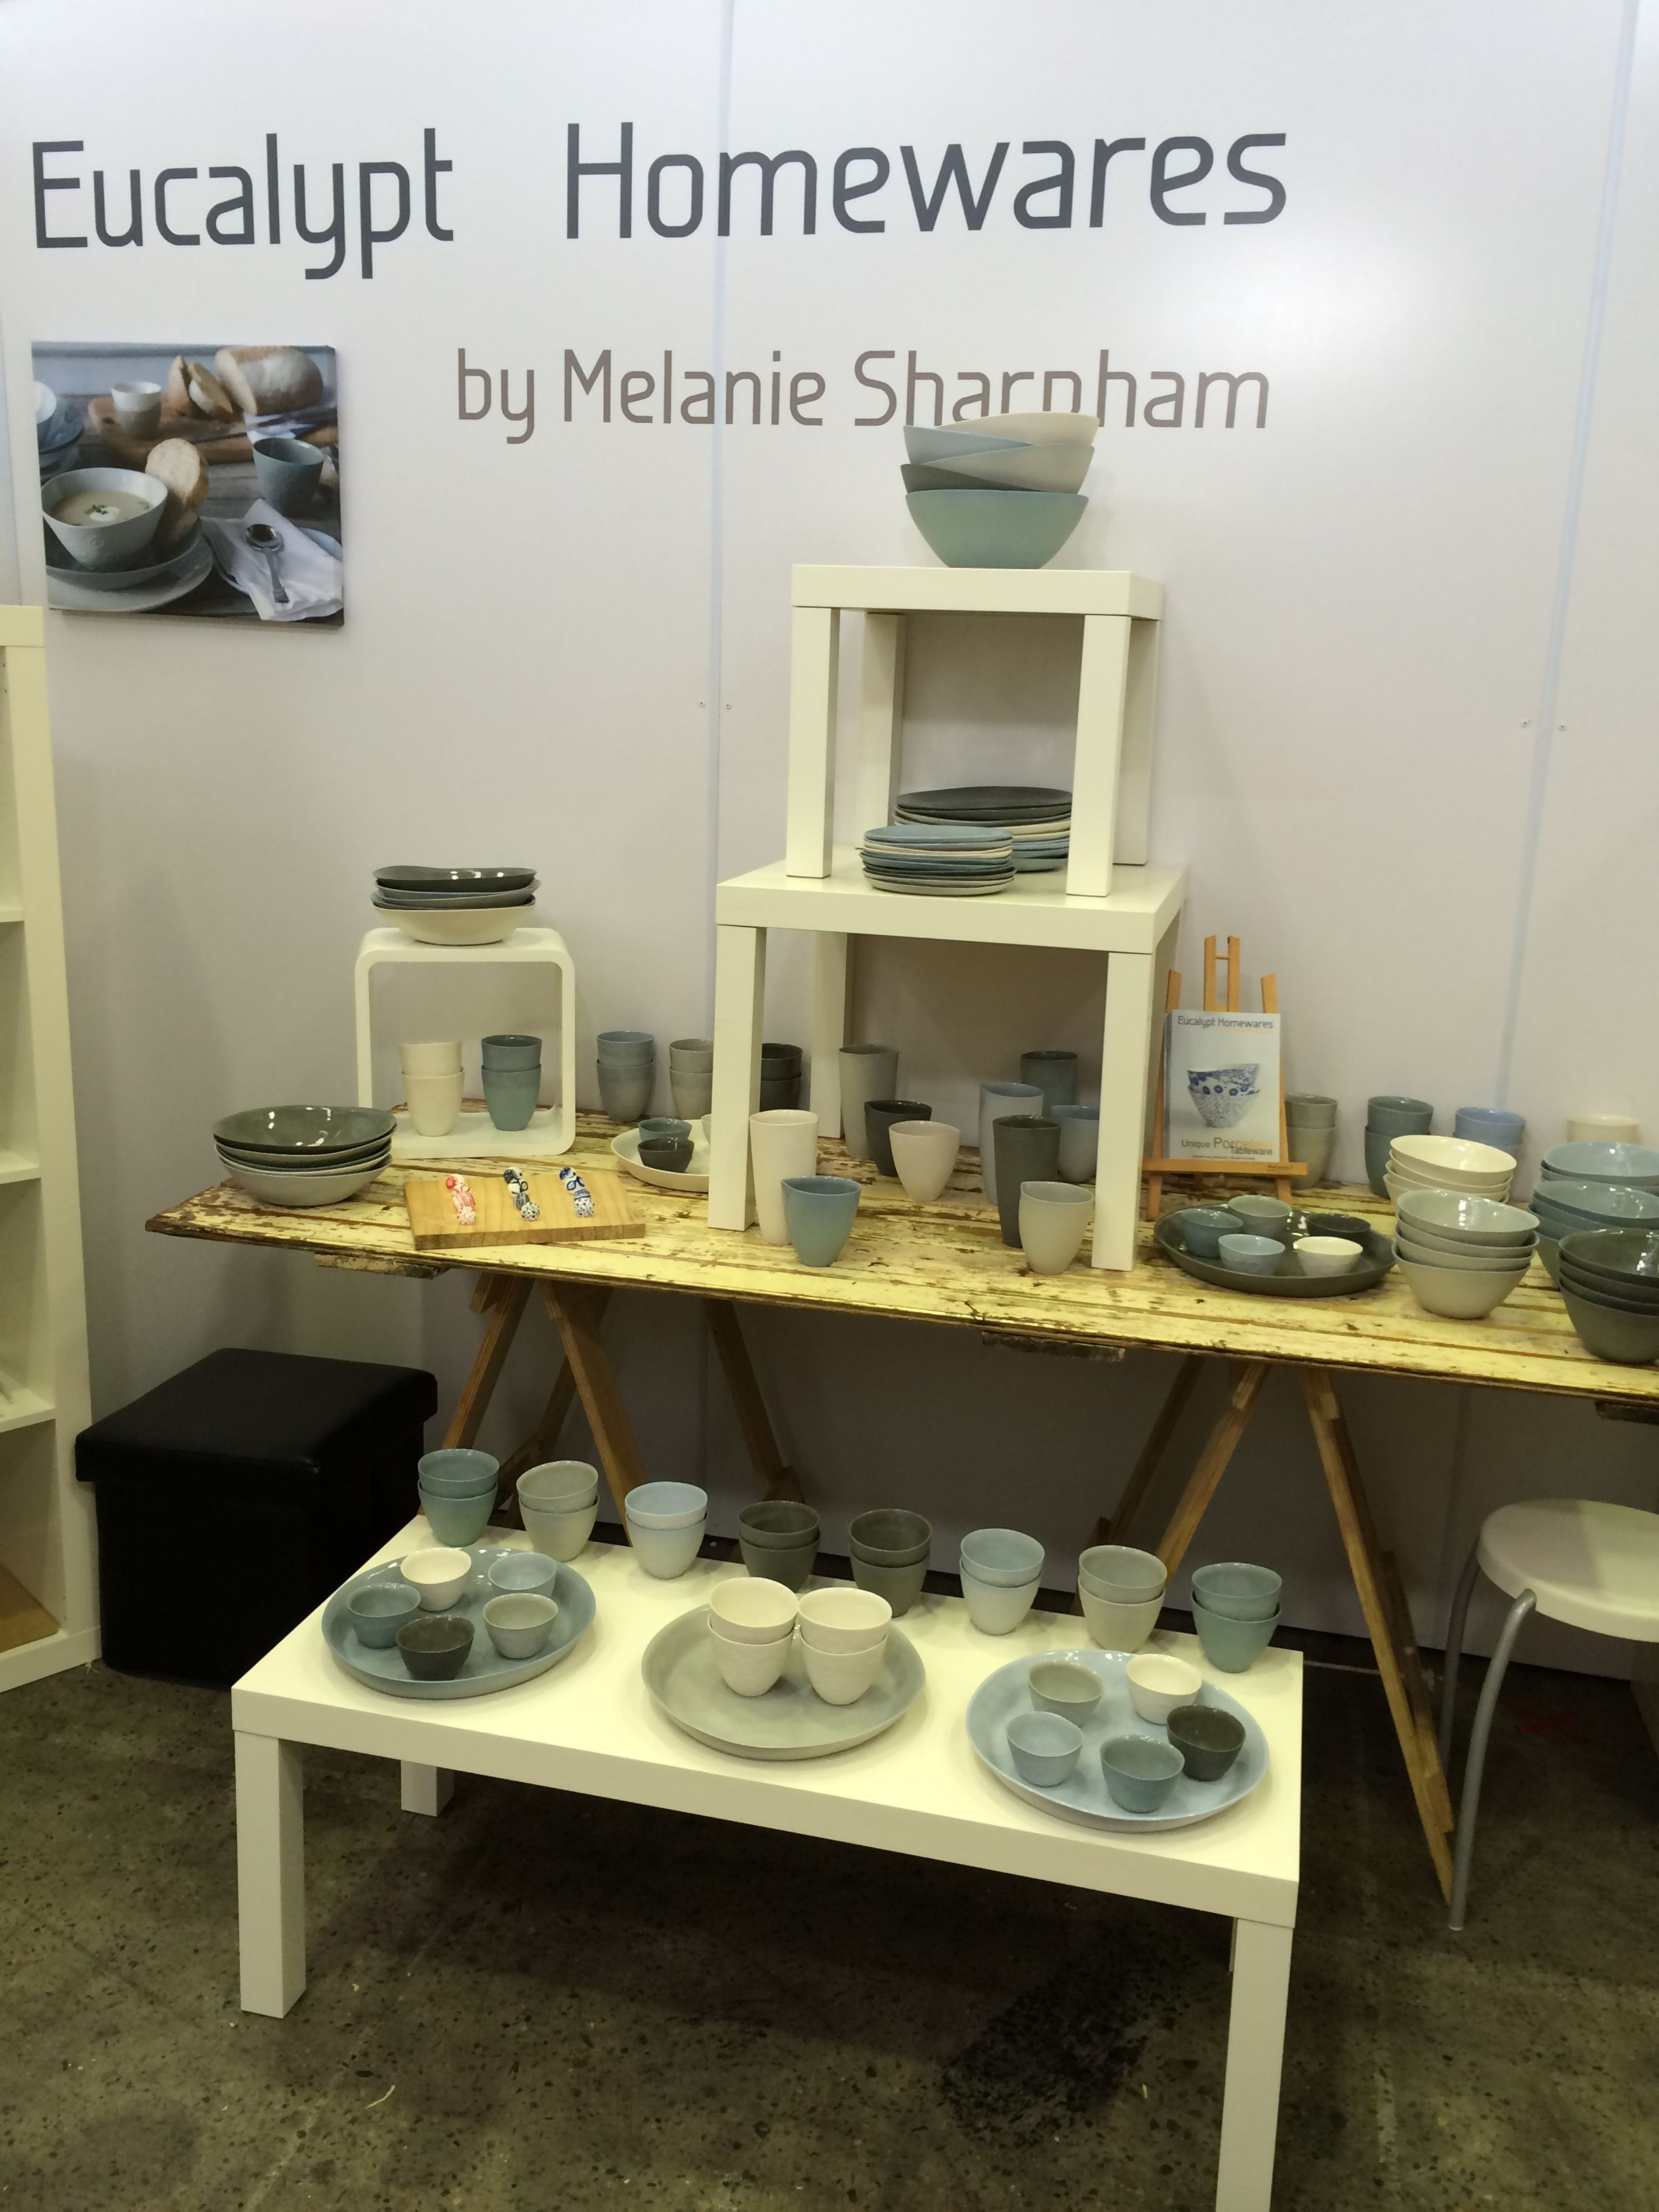 Check Out Our Cream Vintage Trestle Table Being Used In The Beautiful  Eucalypt Homewares Display!